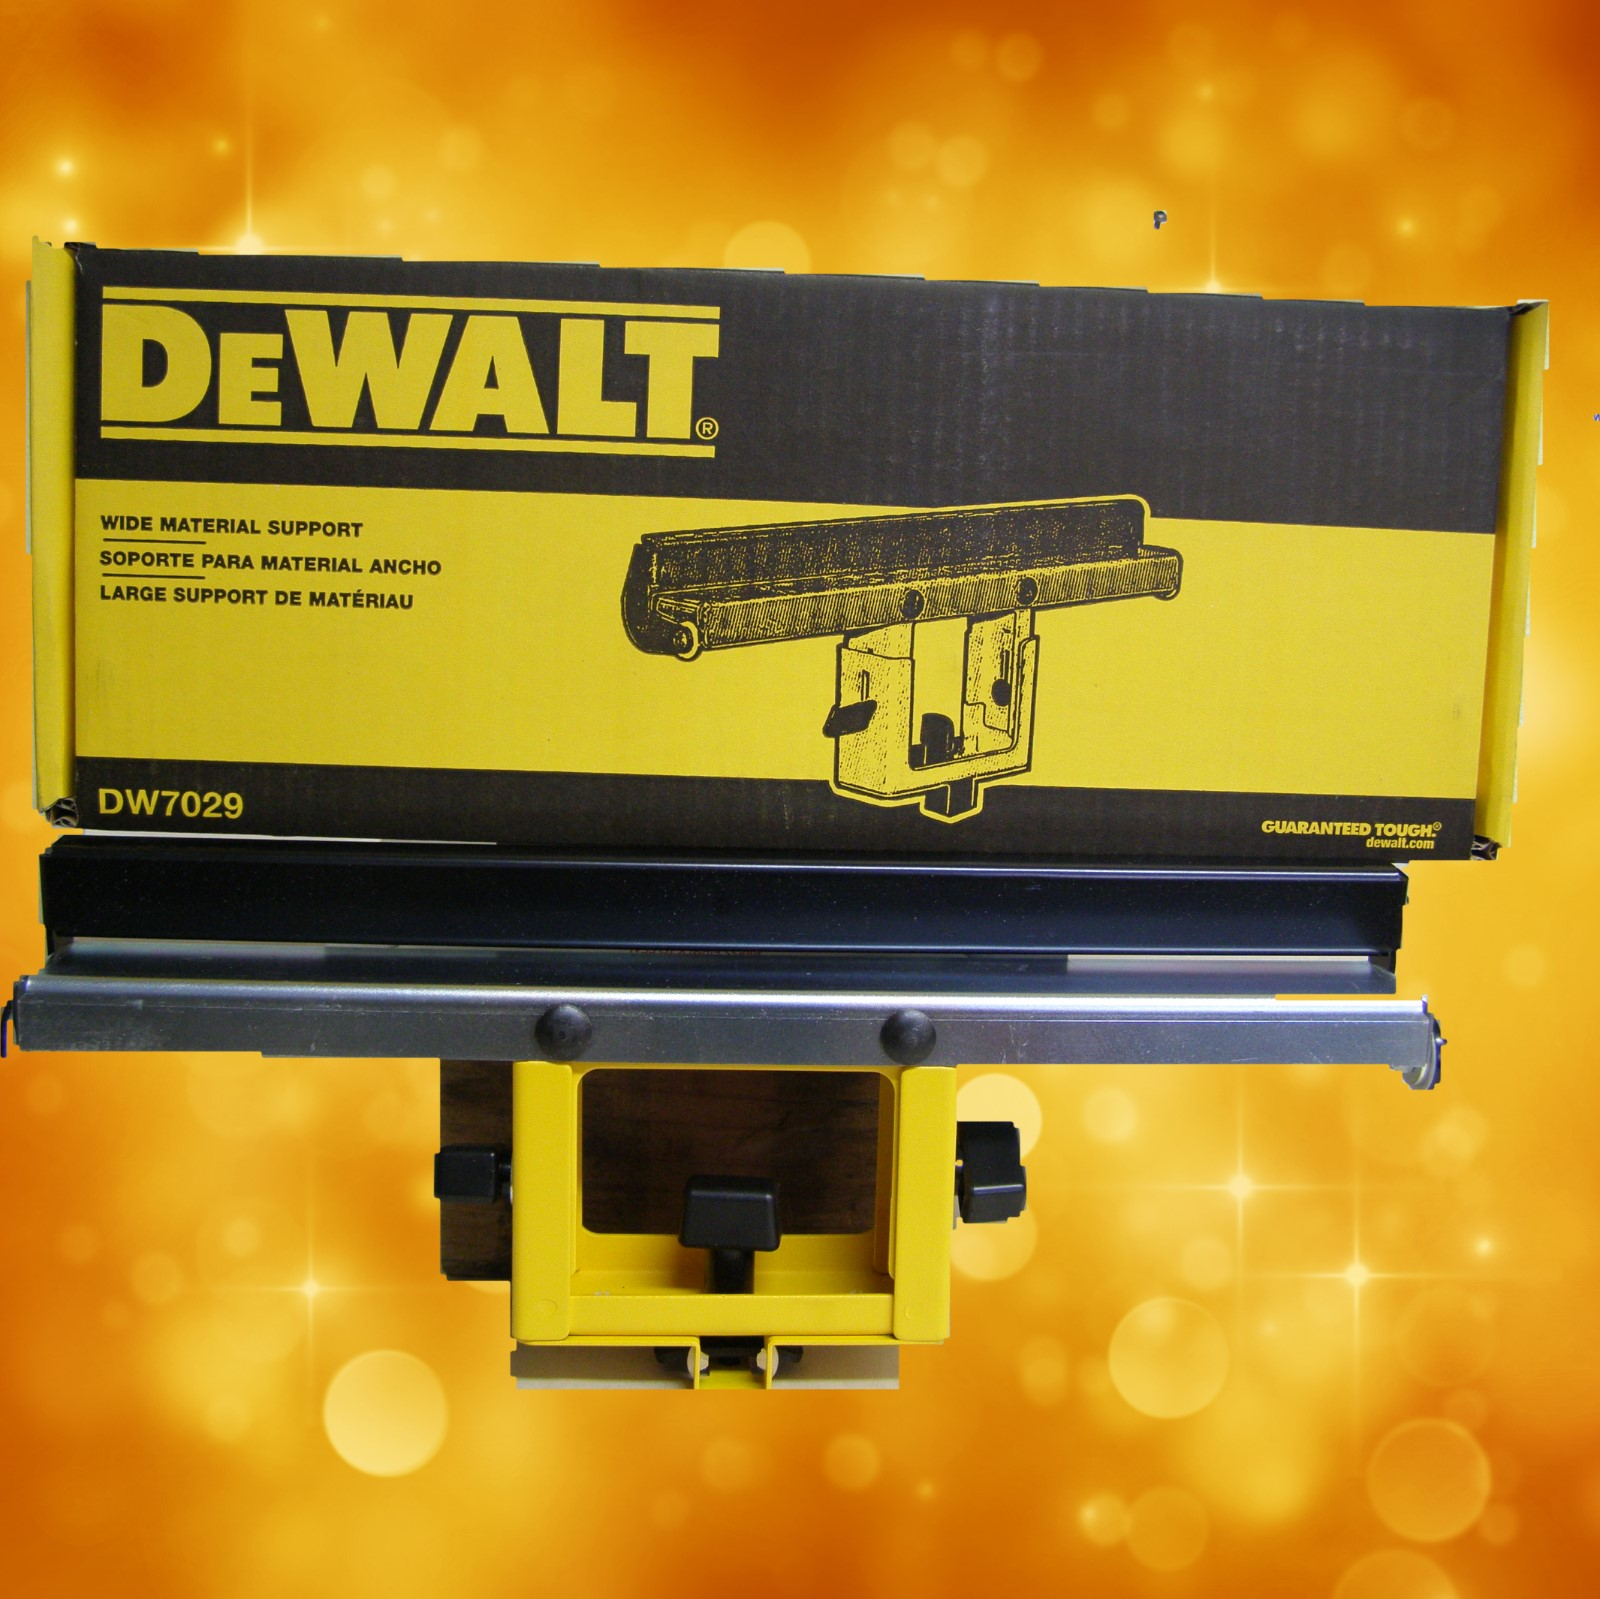 DeWalt DW7029 Wide Miter Saw Stand Material Support and Stop DW7029